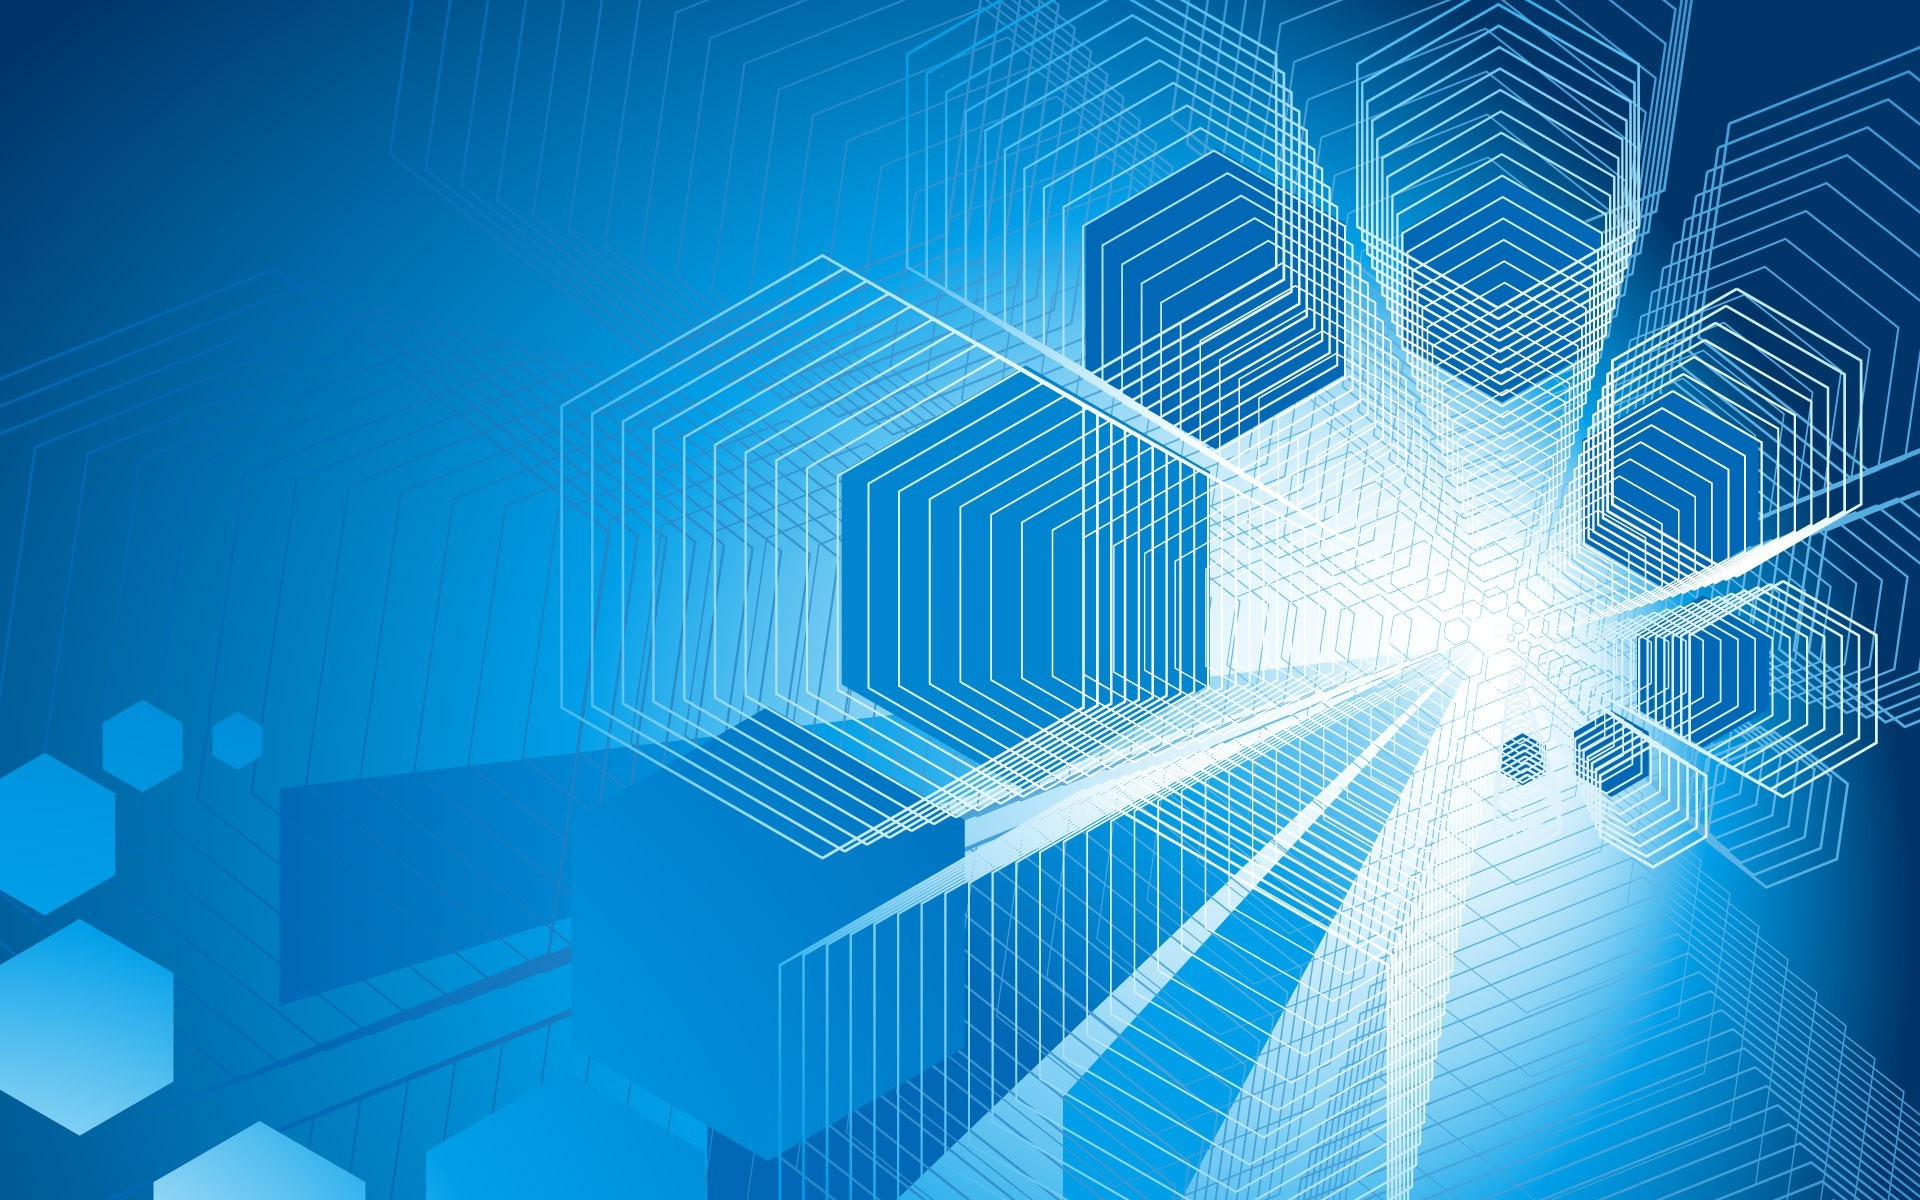 Uhd 3d Wallpaper Download Geometry Simple Background Blue Background Abstract